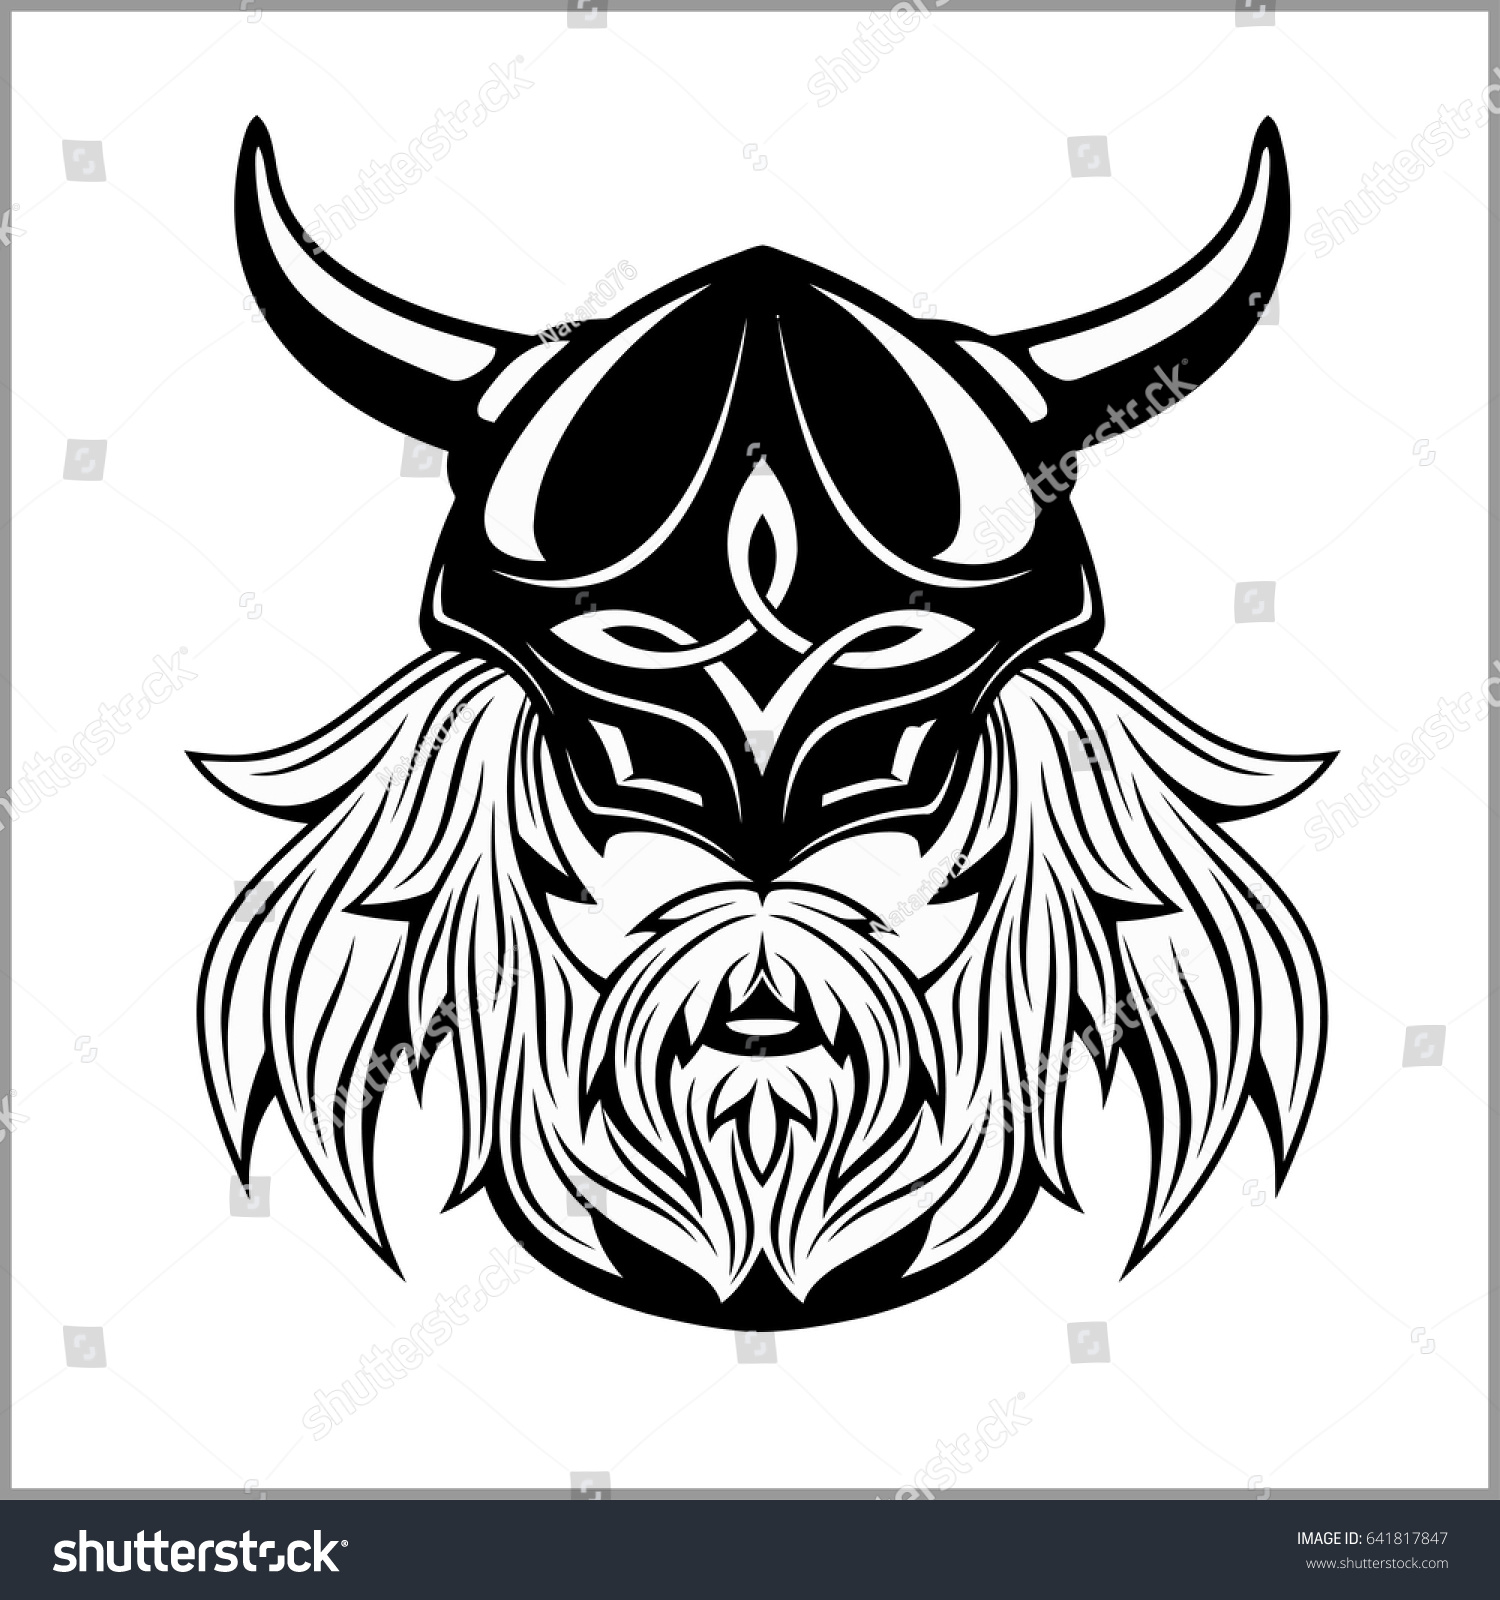 An Image Of The Face Of A Cartoon Viking Warrior Male With Helmet